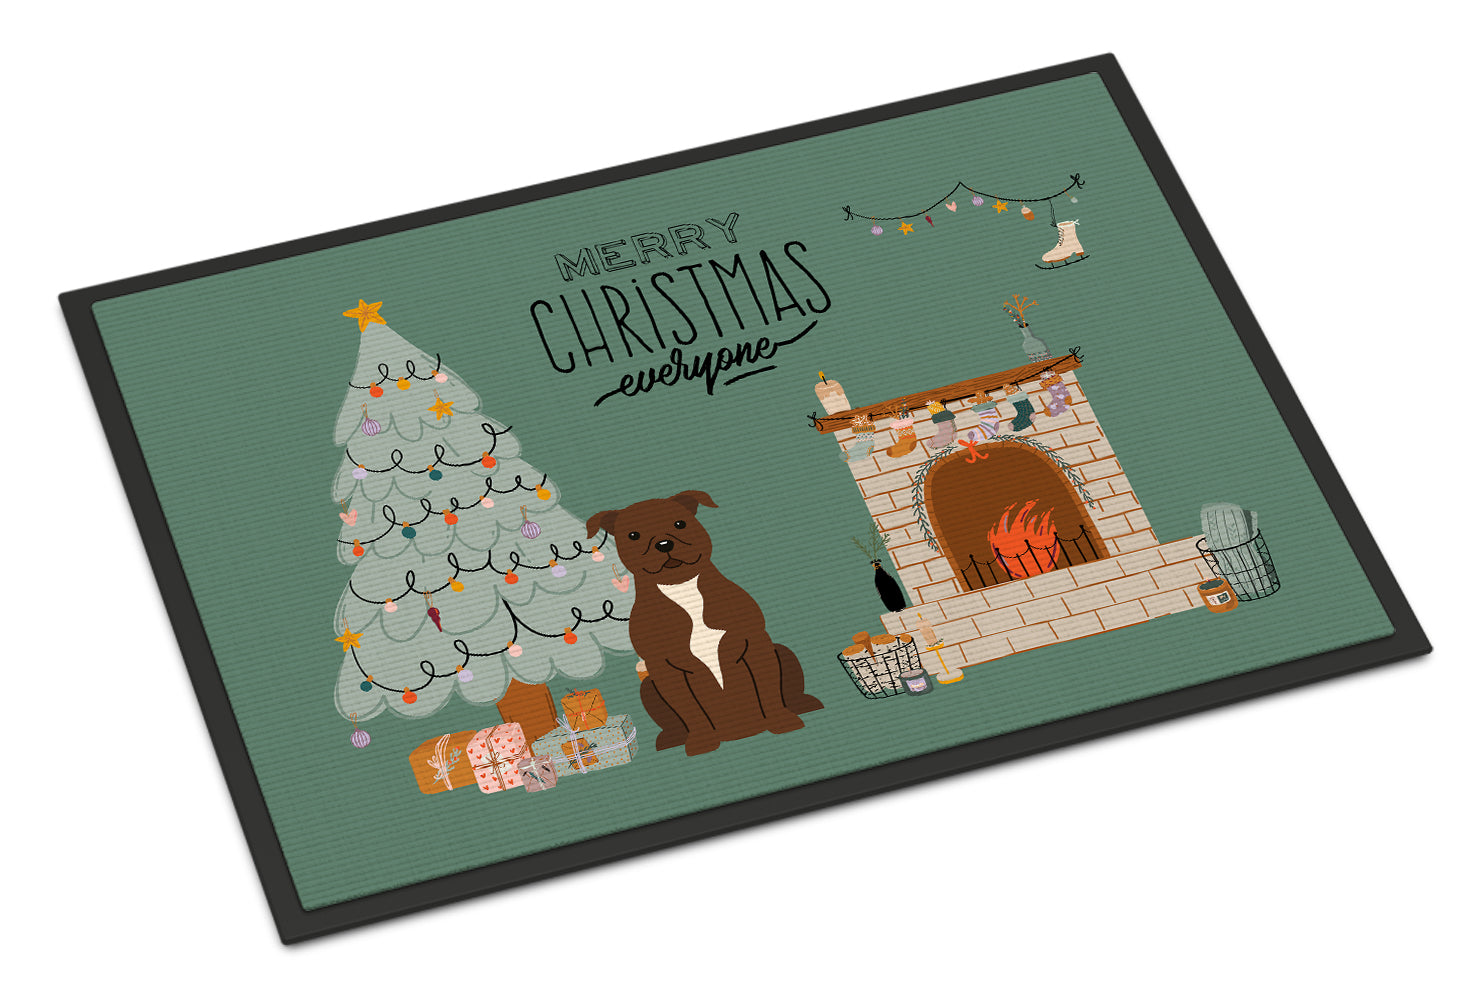 Chocolate Staffordshire Bull Terrier Christmas Everyone Indoor or Outdoor Mat 18x27 CK7611MAT by Caroline's Treasures